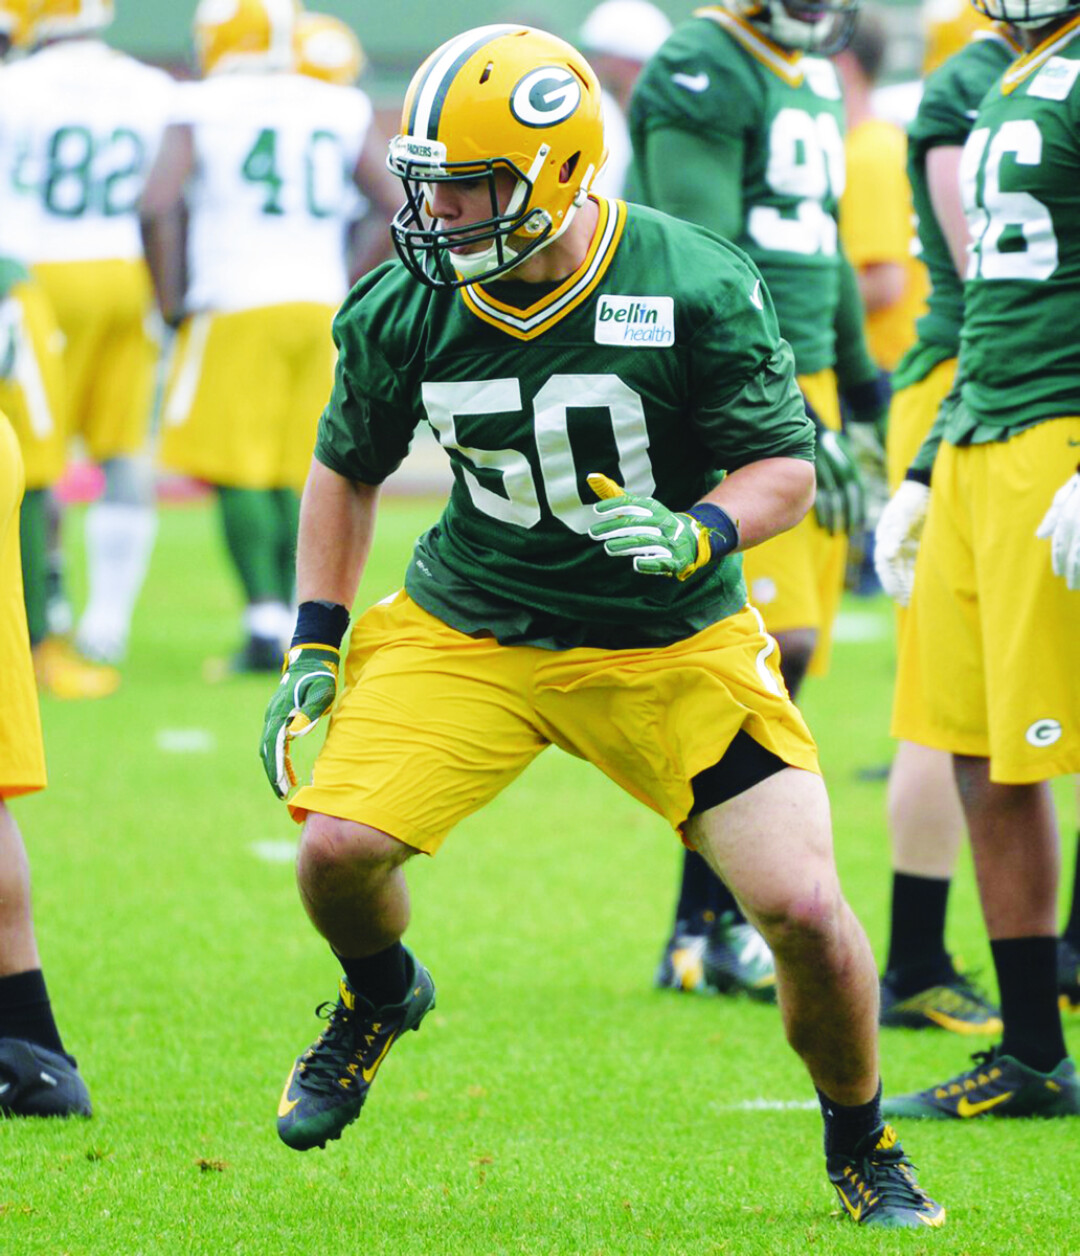 Keep an eye on Packers rookie linebacker Blake Martinez, as he has the skills and talent to have a breakout first year.